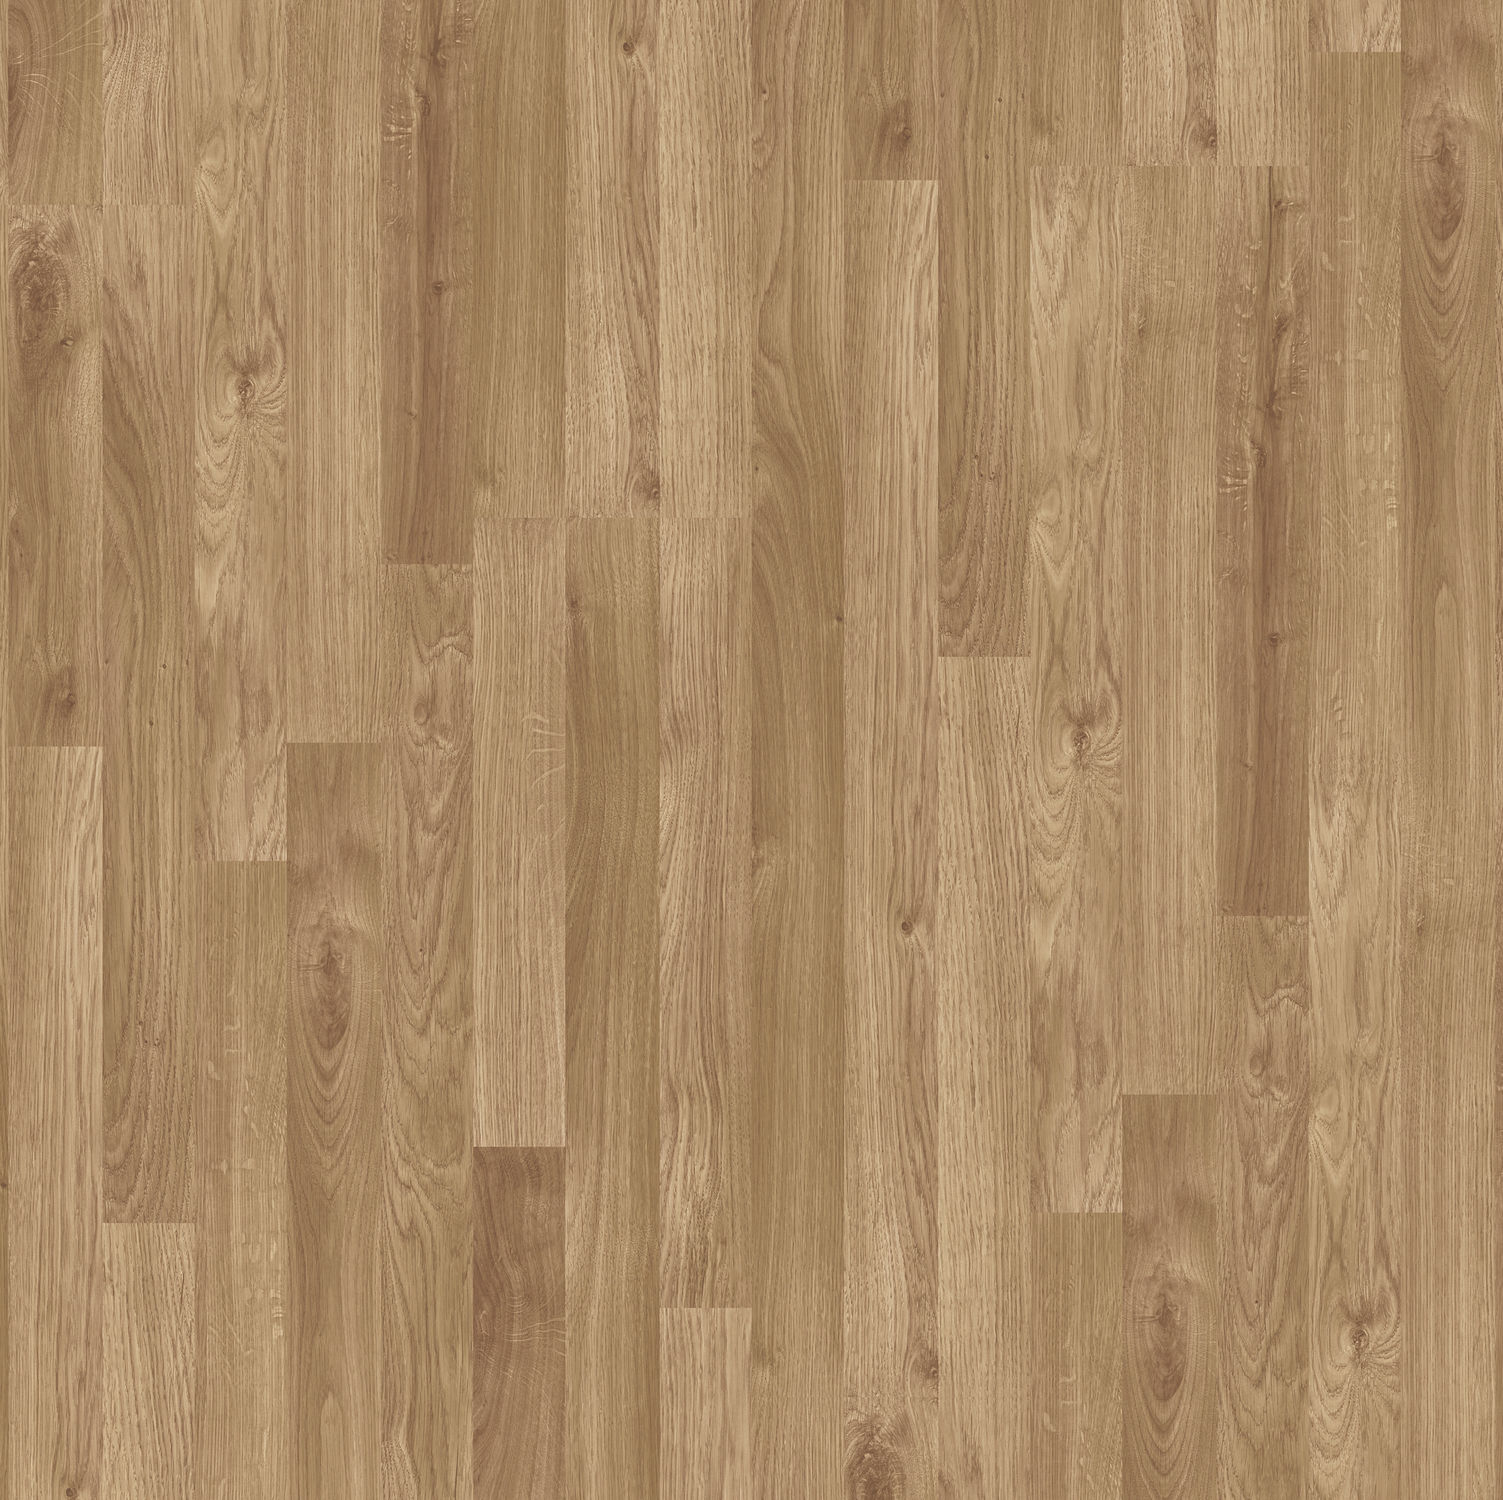 mahogany pergo amazon com peruvian wide case flooring laminate ft mm thick xp in x length sq floor dp